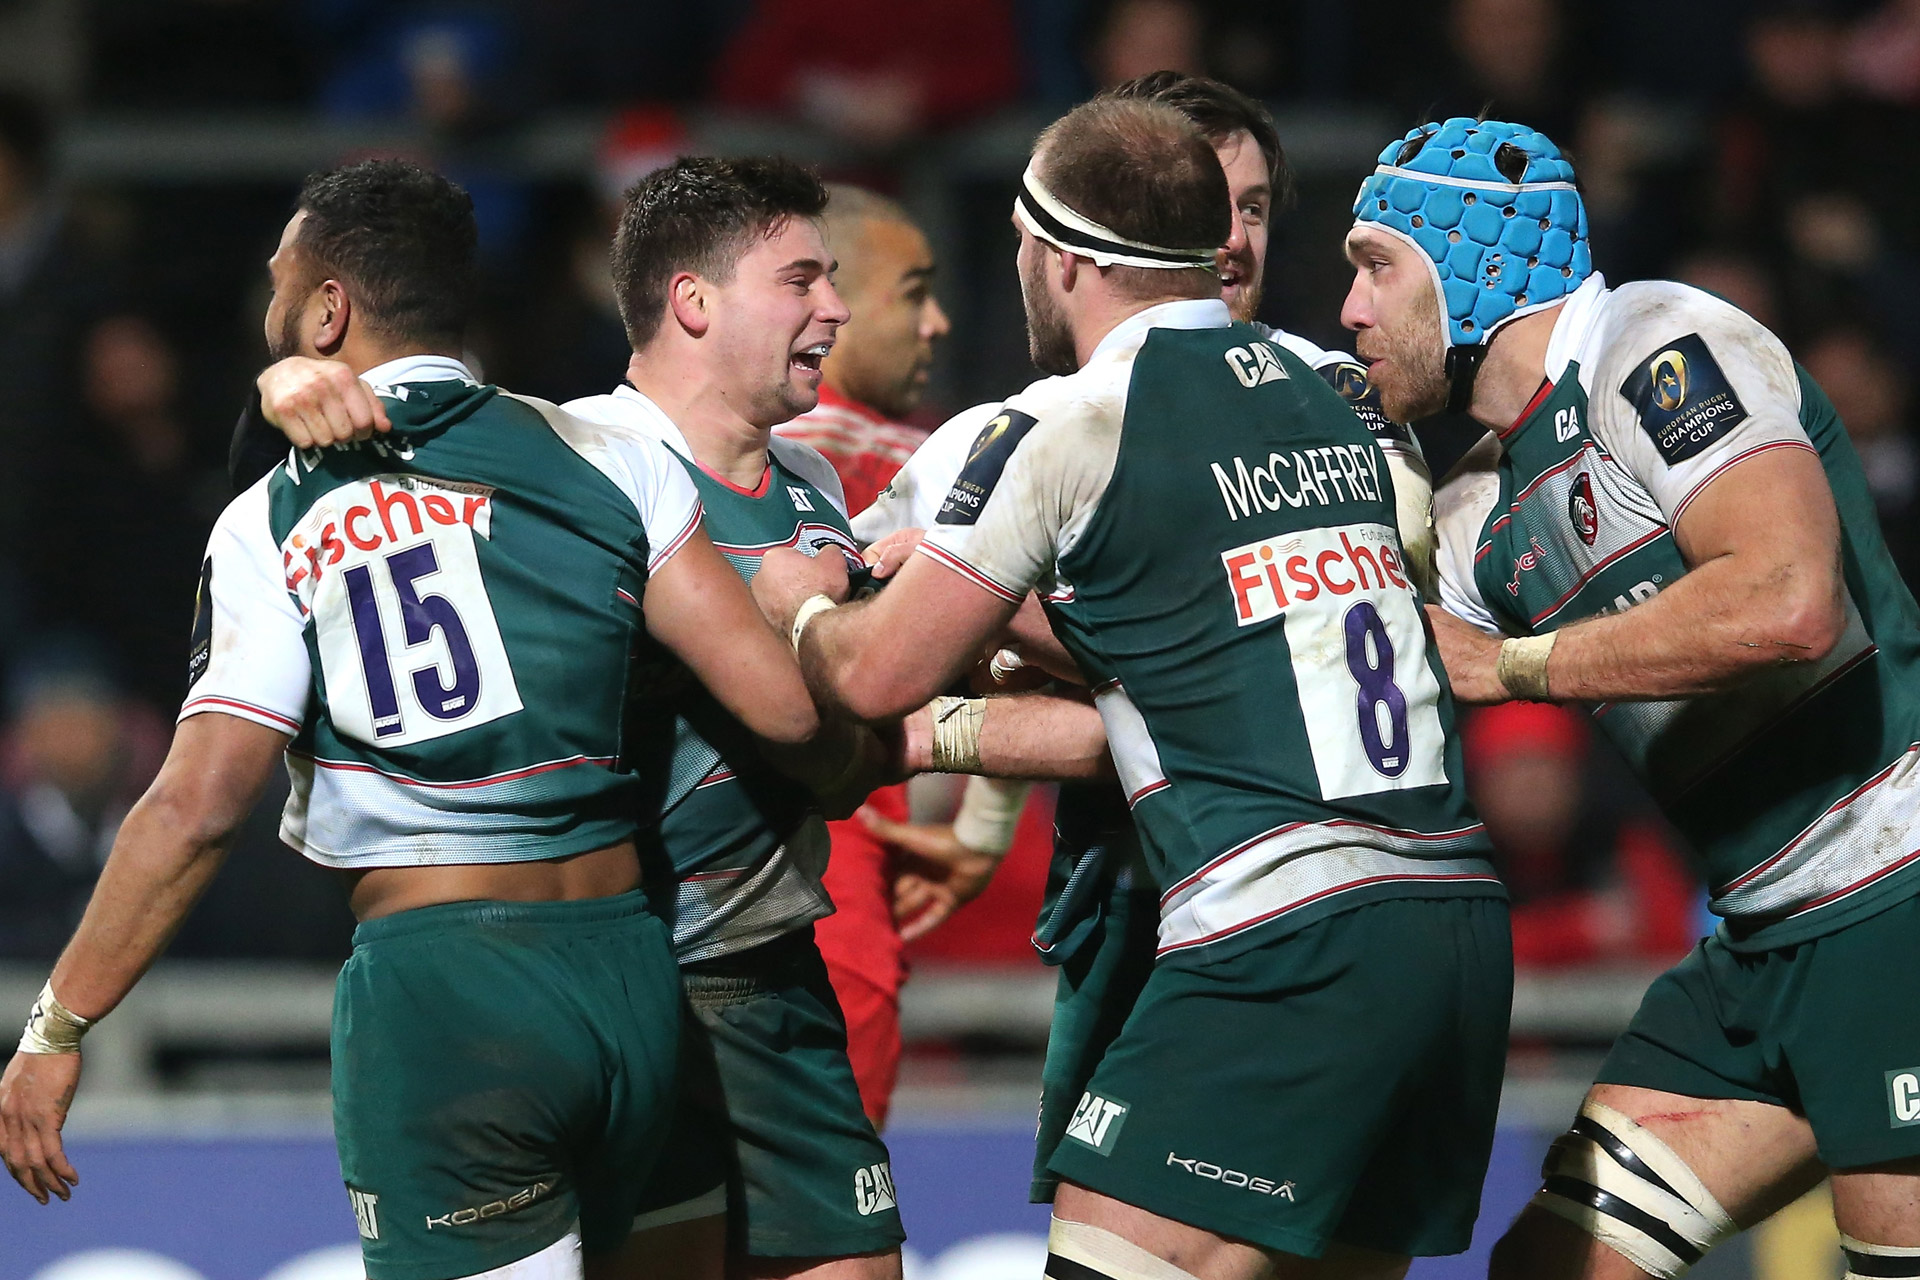 Bijscholing Leicester Tigers coaches!